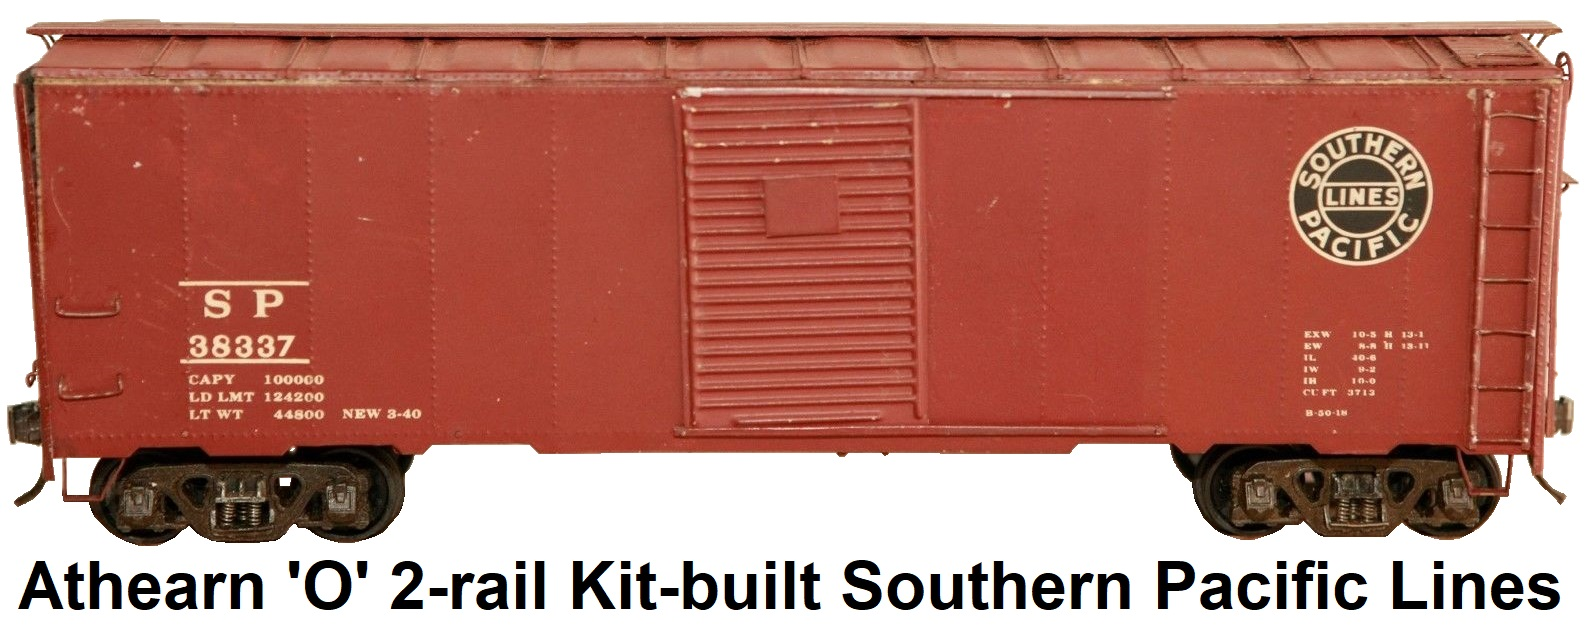 Athearn 'O' scale Kit-built 2-rail Southern Pacific Lines Single door 40' steel box car